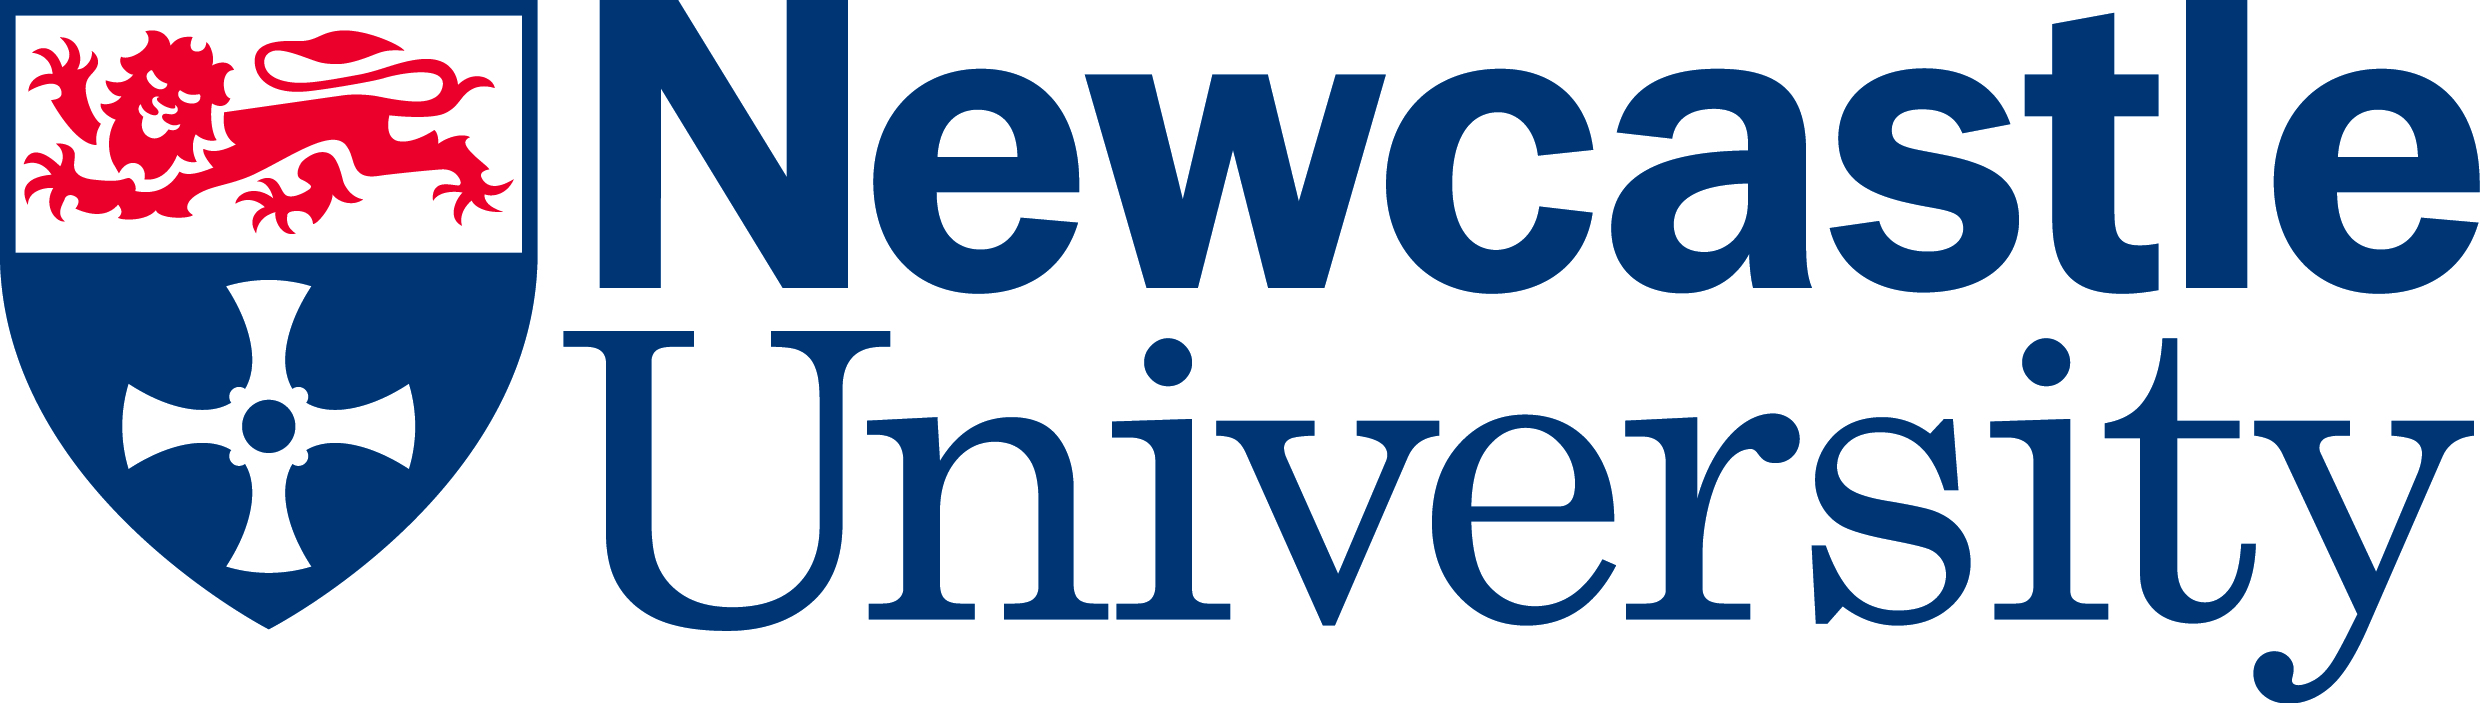 Newcastle University Full Logo_CMYK